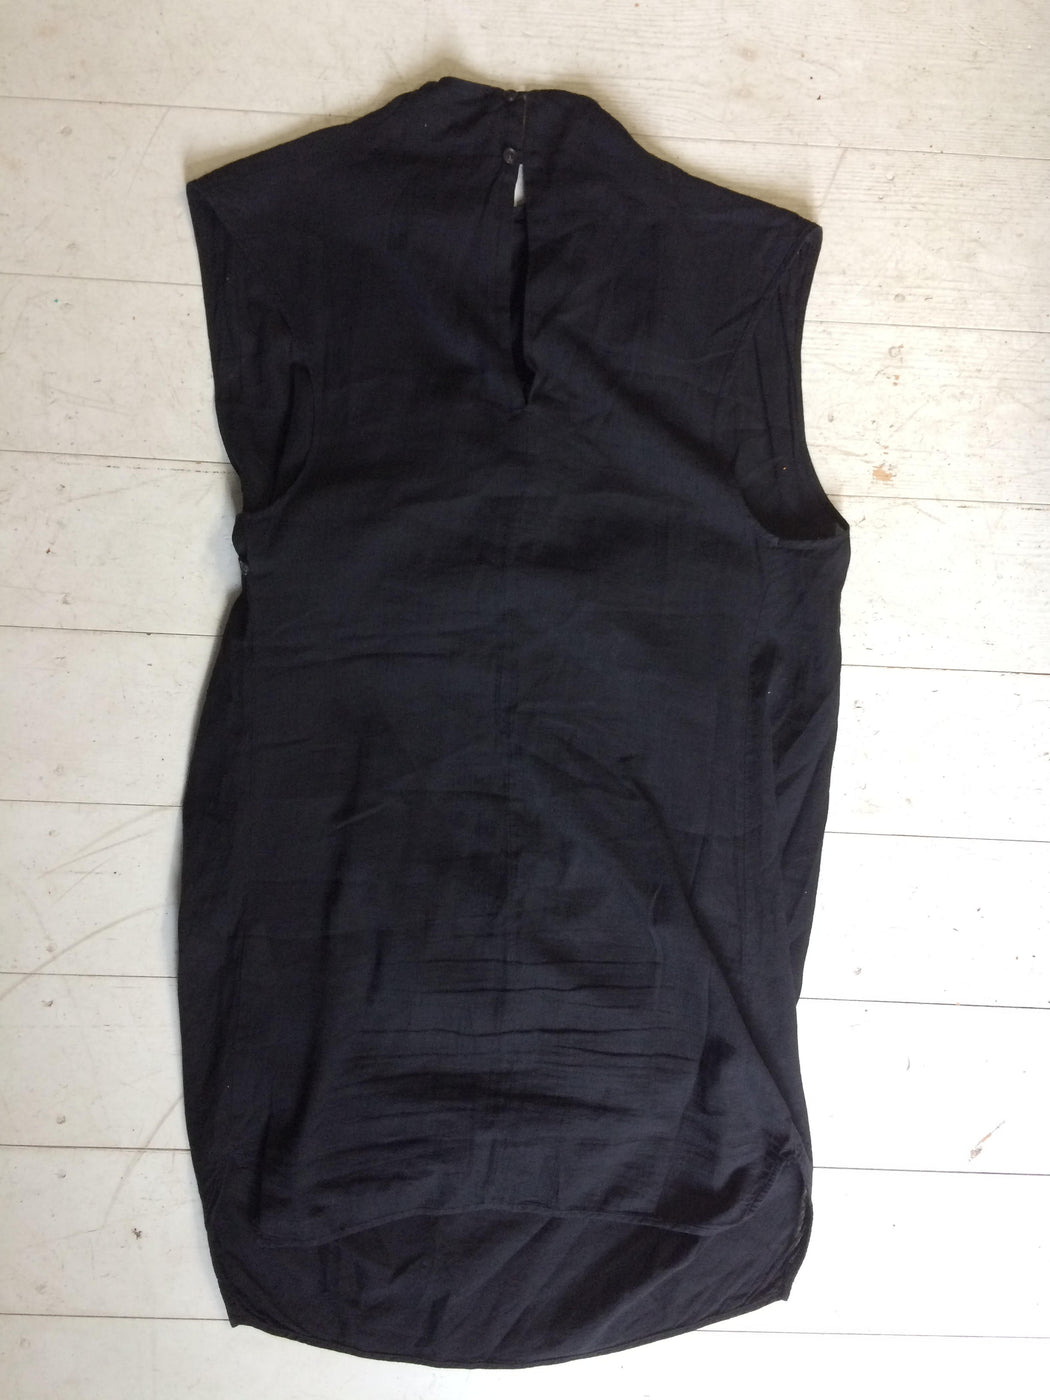 Black Cotton Damir Doma Silent Wrap Dress Sleeveless Wraparound